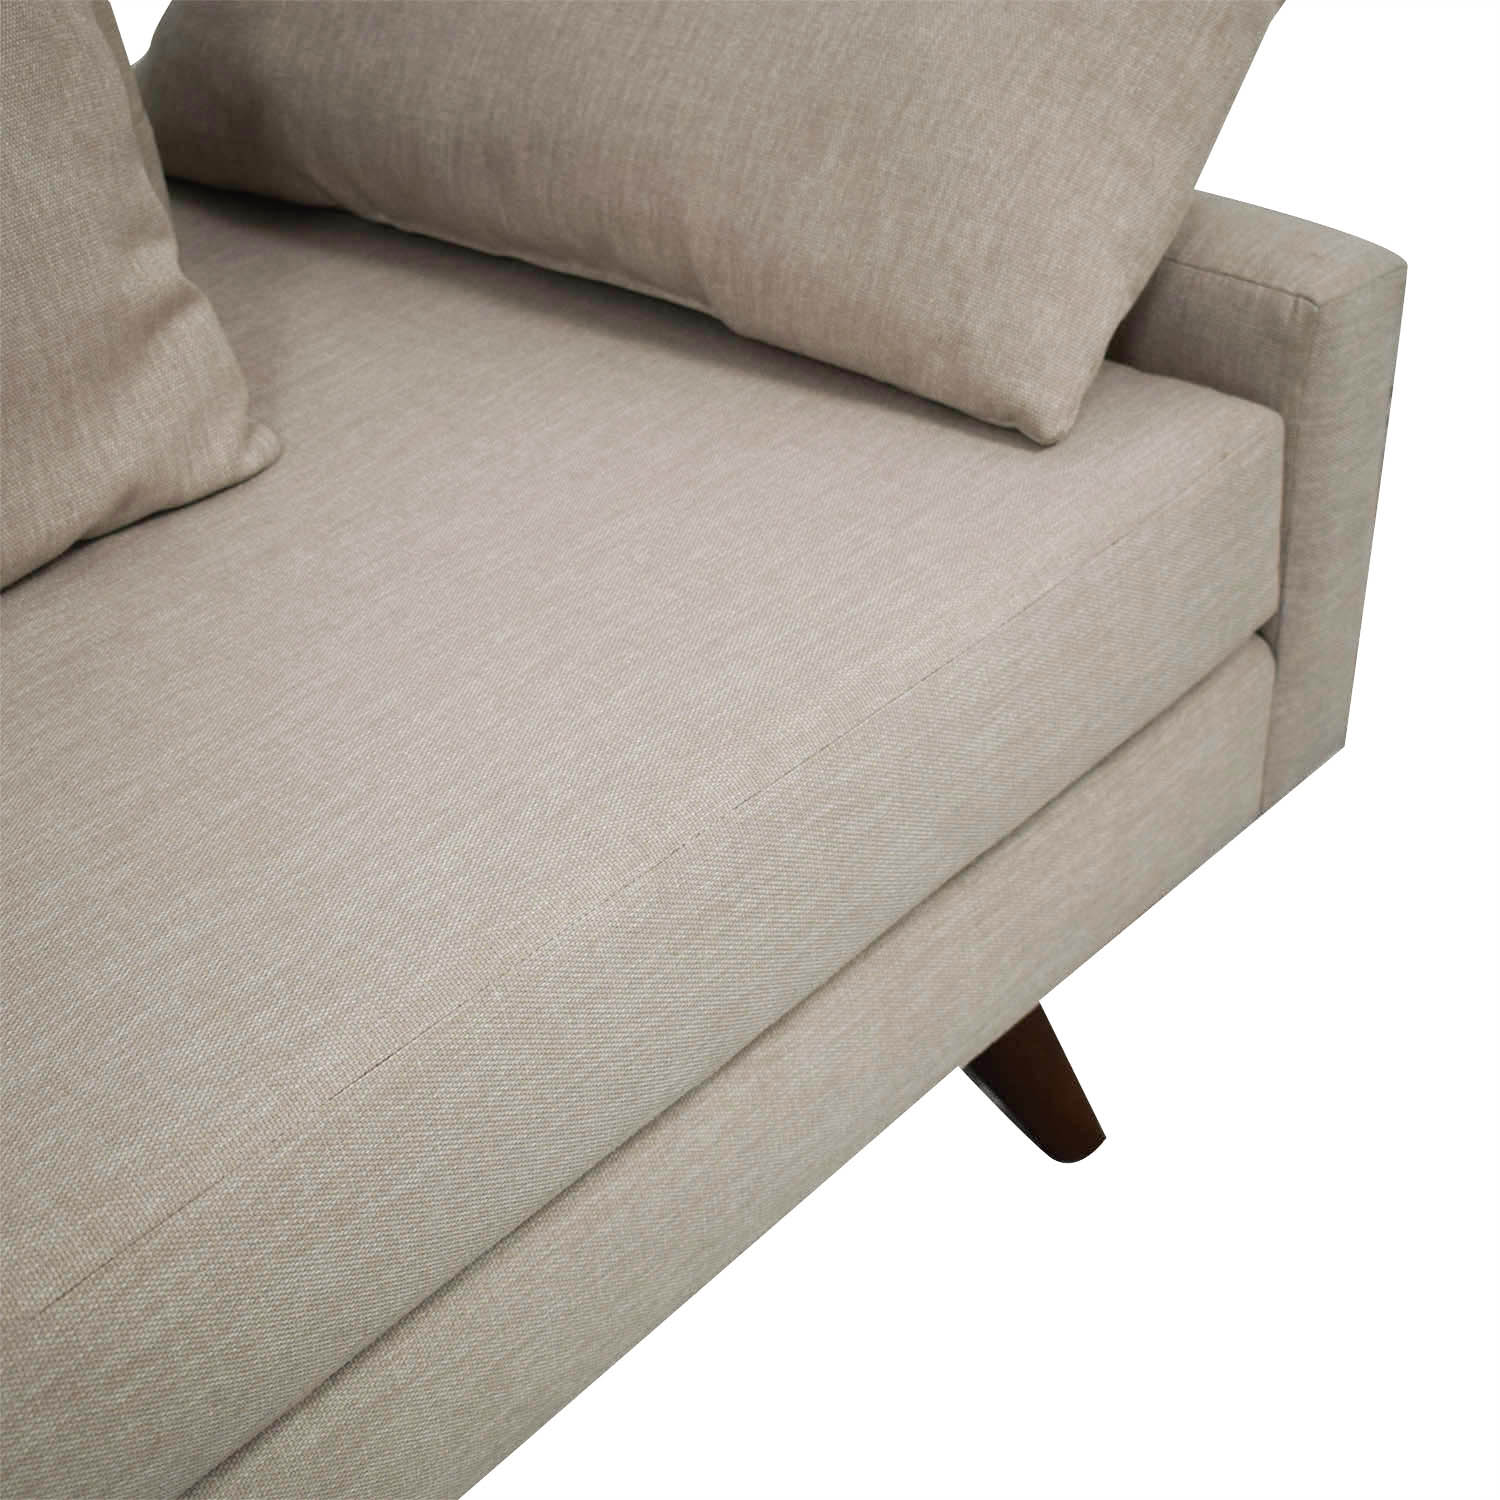 Thrive Thrive Furniture Mid-Century Sofa on sale